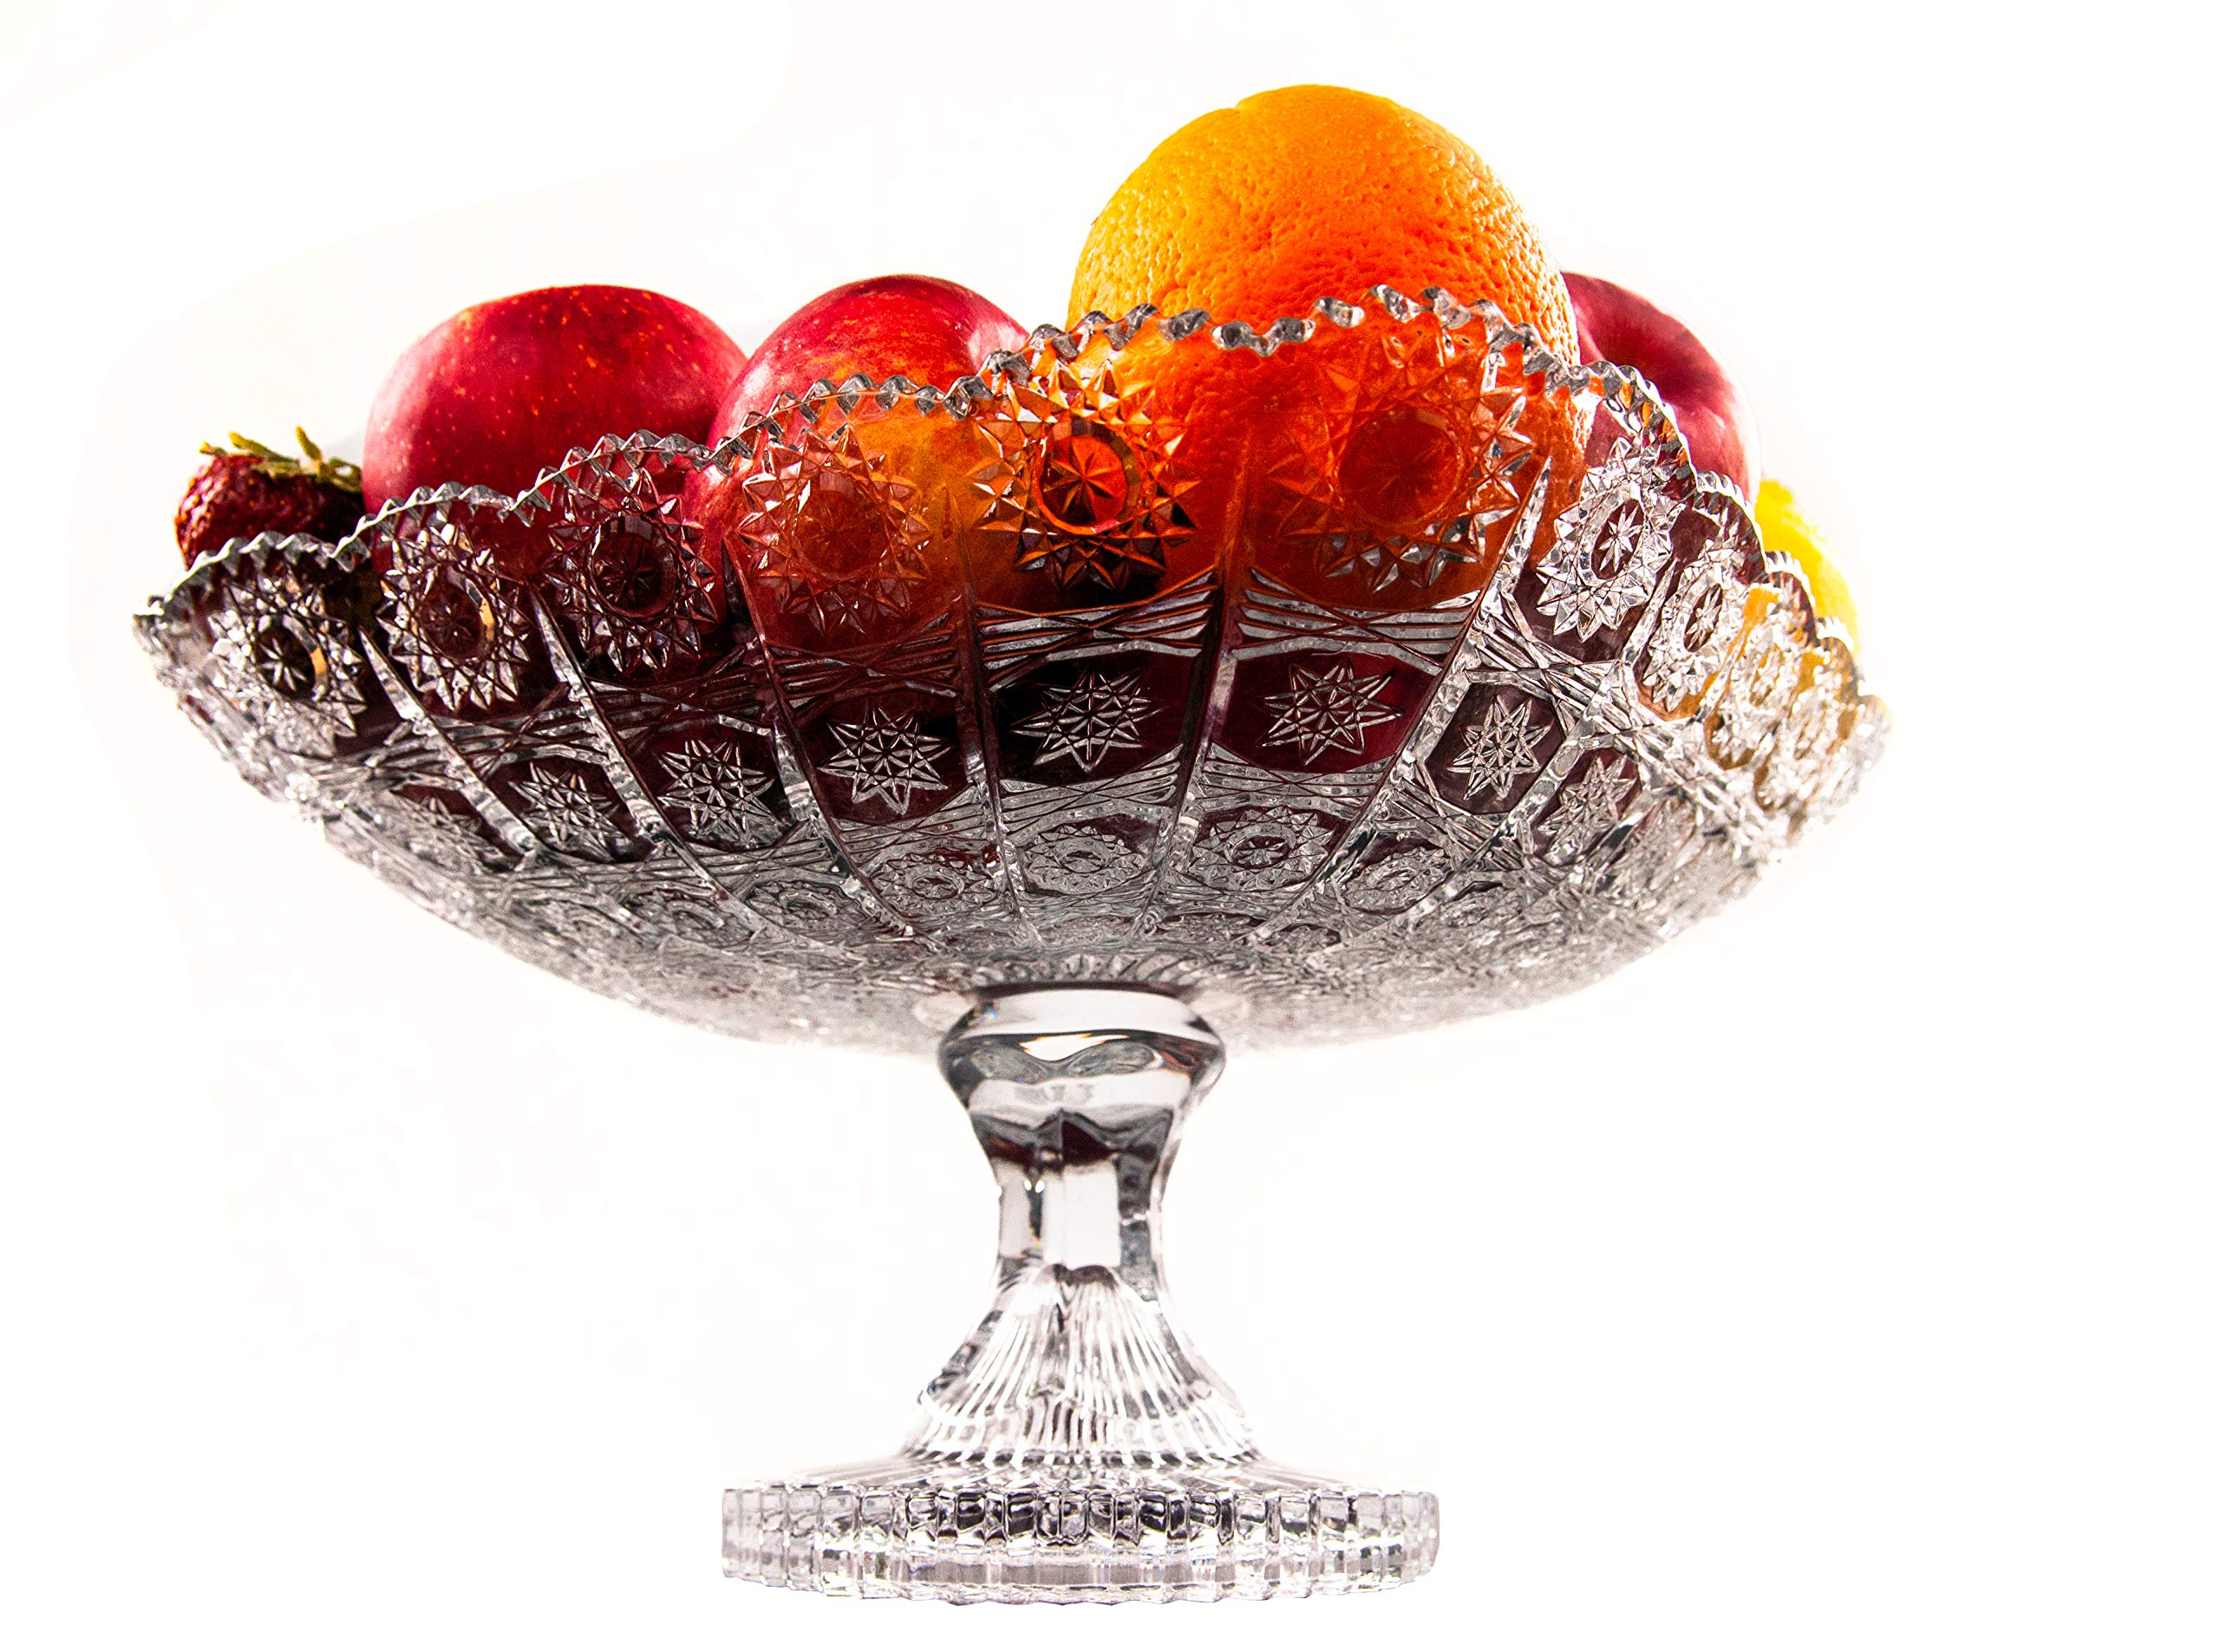 Pars Collections New Elegant Crystal Glass Centerpiece Serving Footed Square Bowl for Home, Office, Décor, Serving Fruit or Desert (Clear)